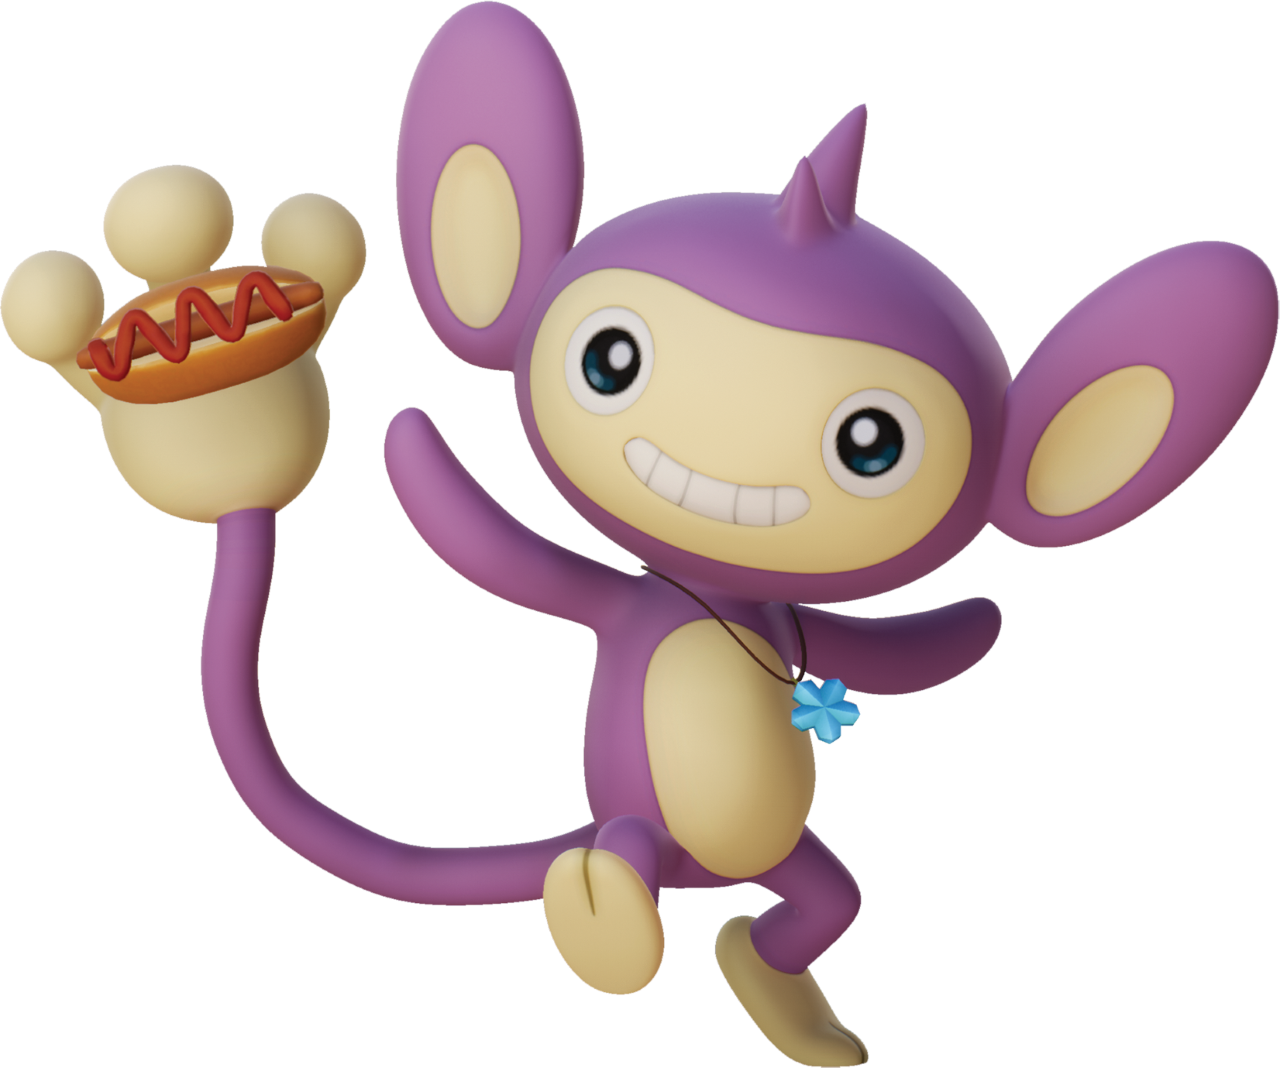 Image aipom pikachu png. Detective clipart mystery genre